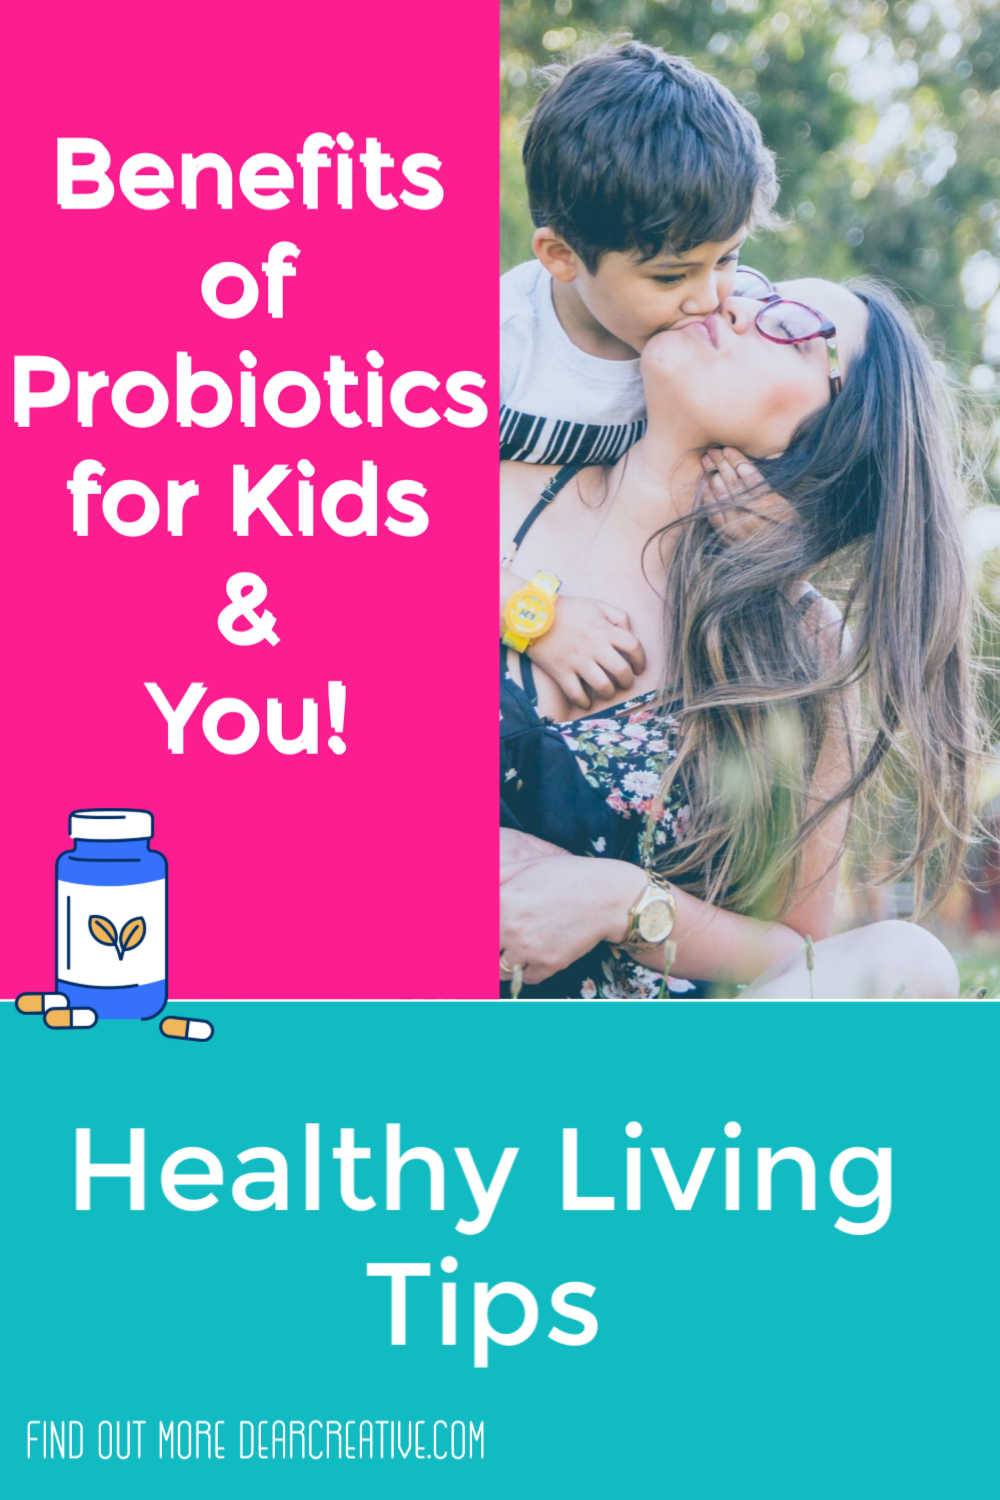 Don't Let Digestion Issues Slow You Or Your Kids Down!